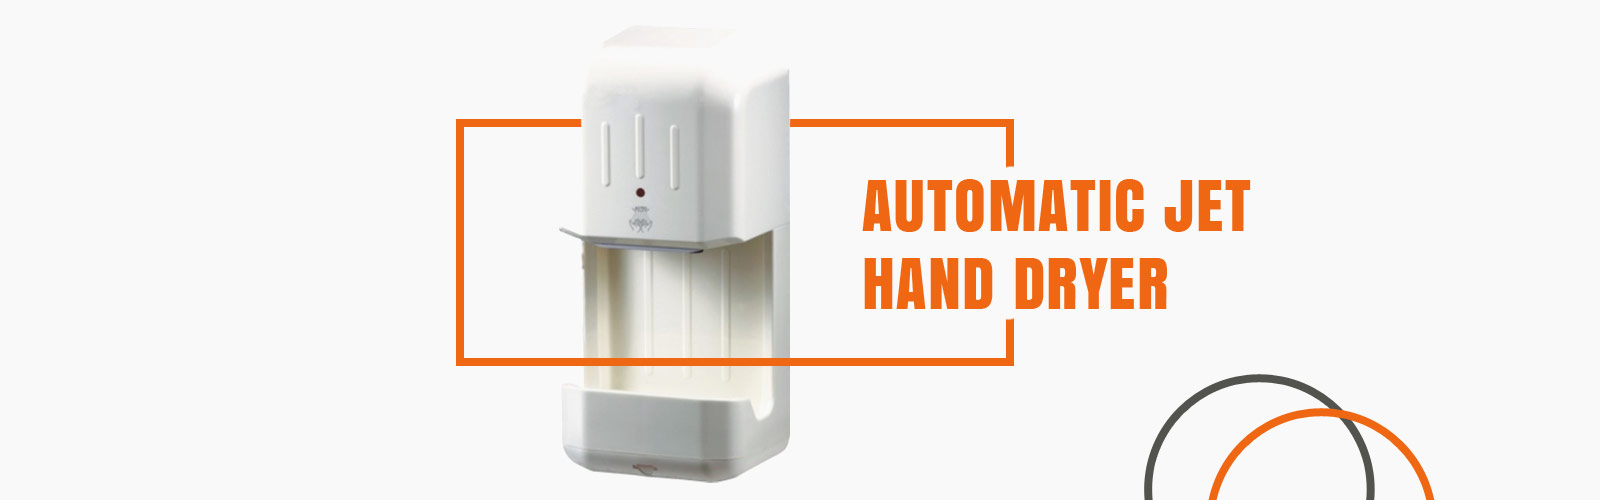 Jet Hand Dryer <span> Fully Automatic